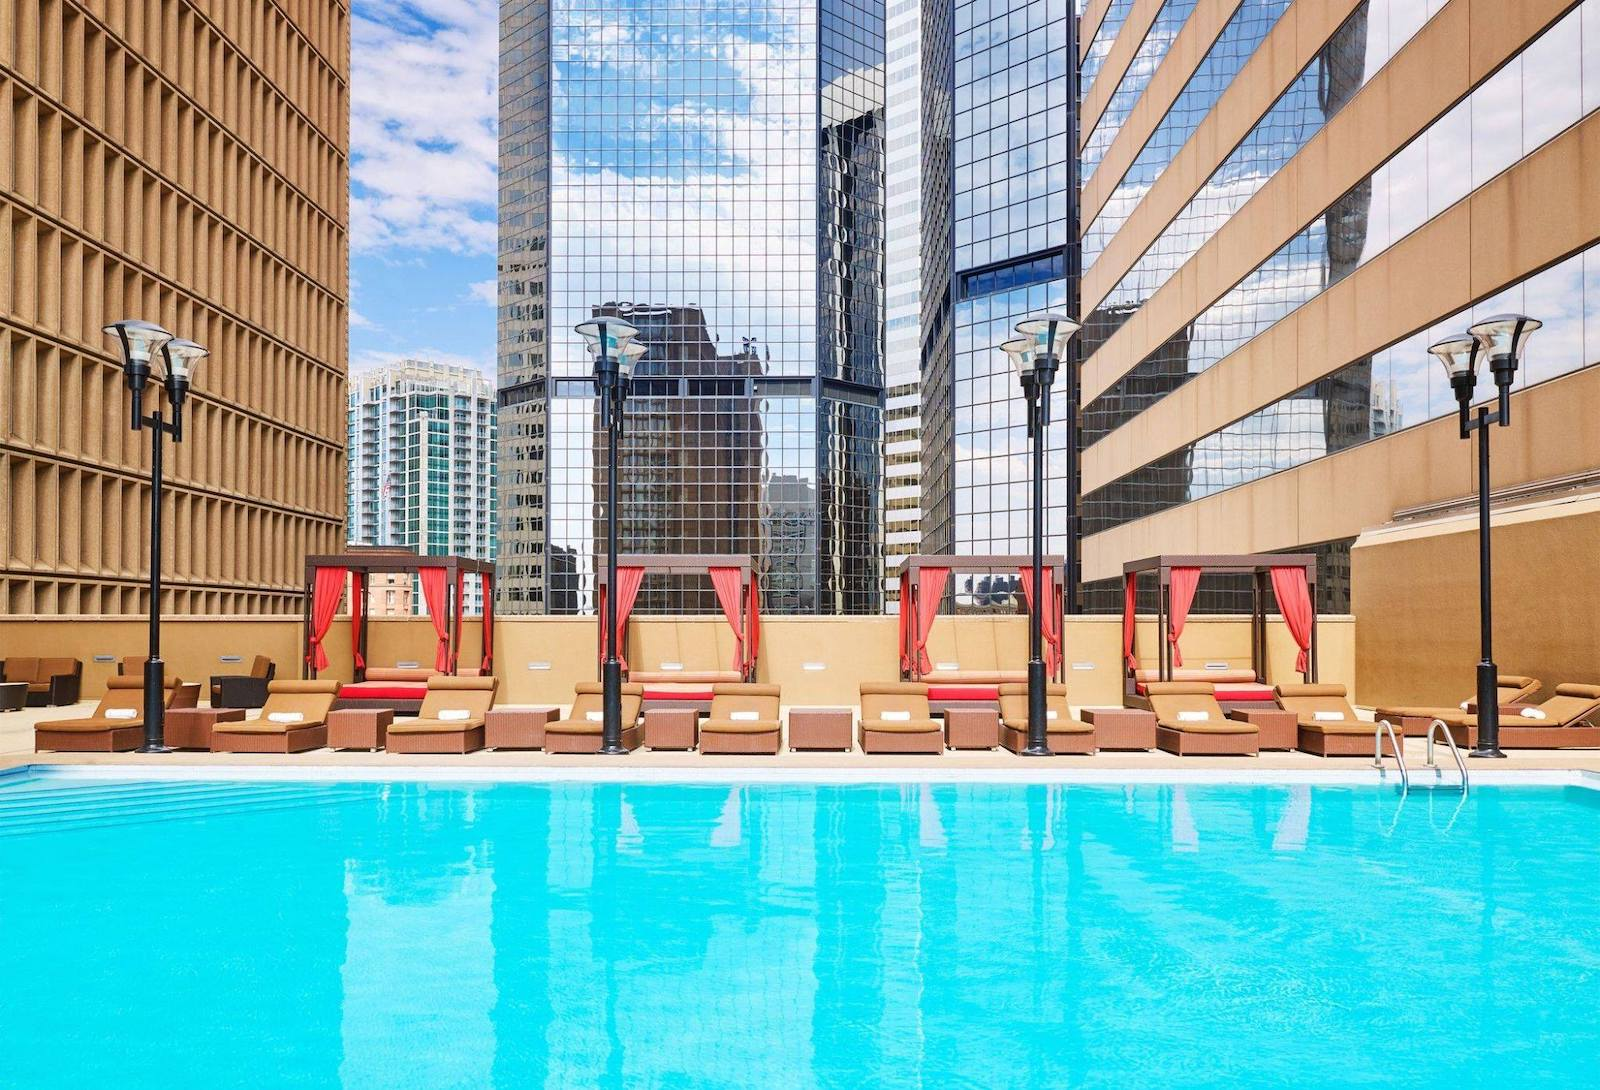 Swimming pool at Hotel room at Sheraton Denver Downtown Hotel, CO